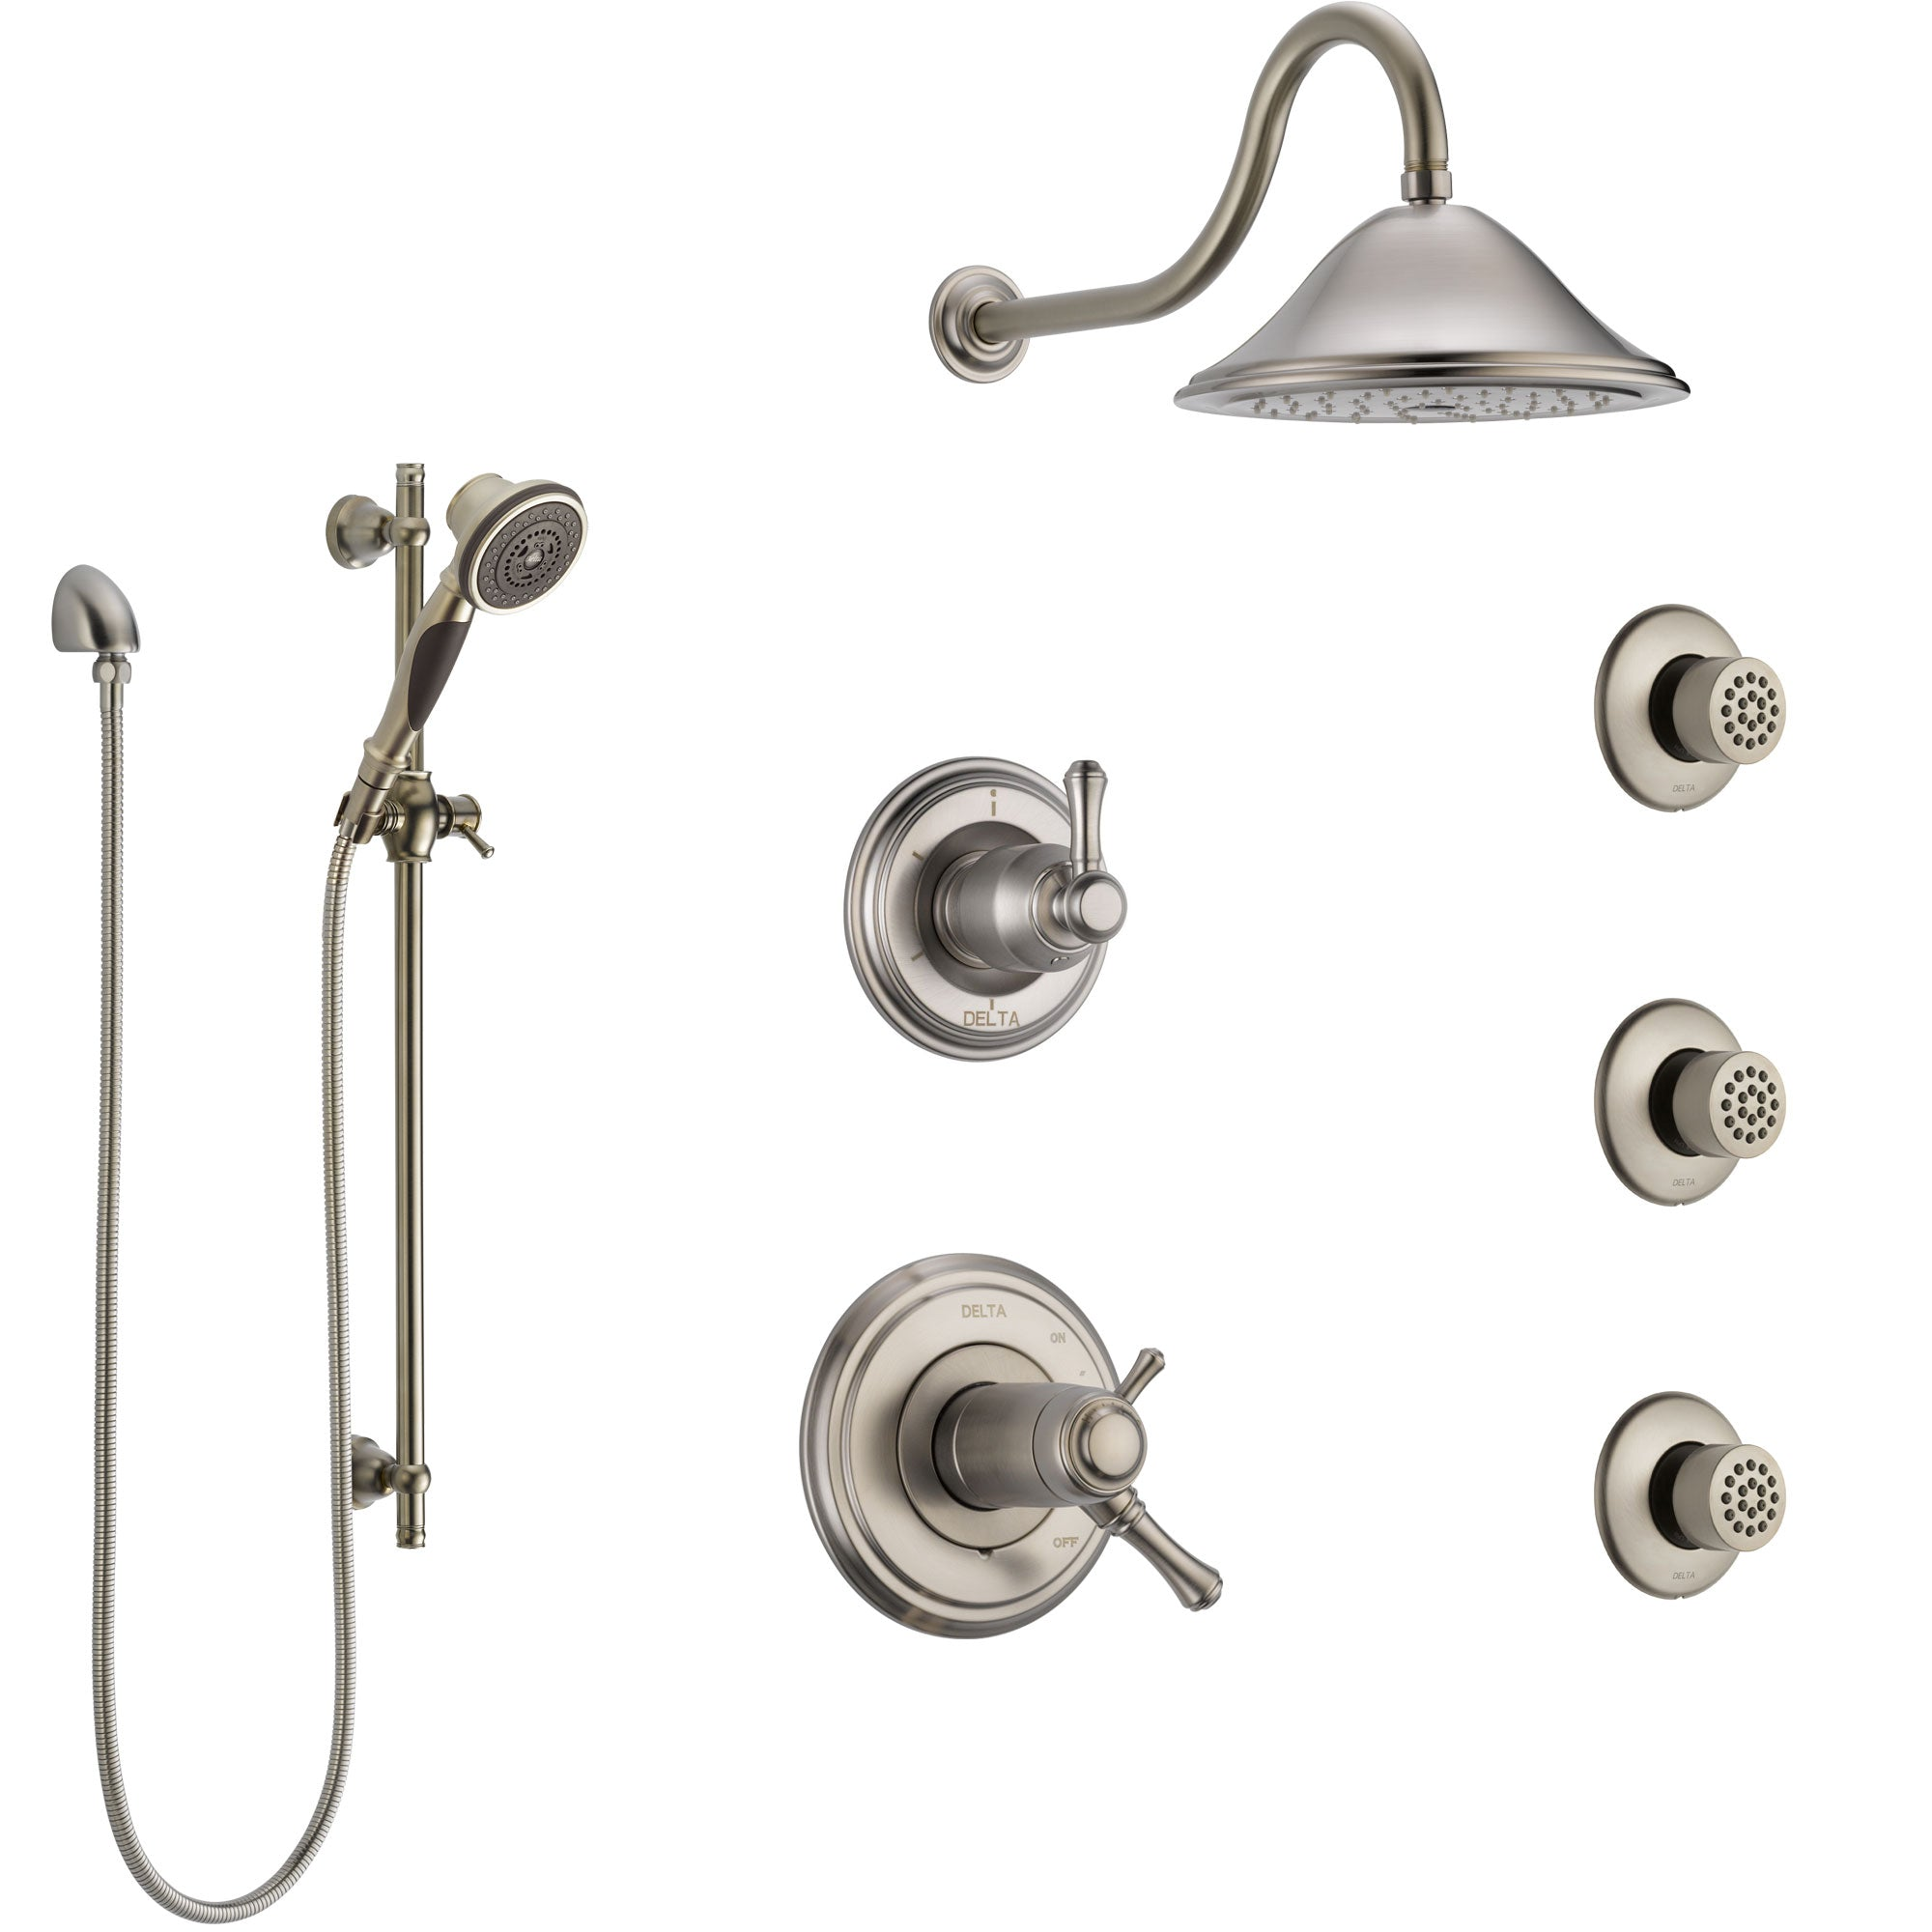 Delta Cassidy Dual Thermostatic Control Stainless Steel Finish Shower System, Diverter, Showerhead, 3 Body Sprays, and Hand Shower SS17T2971SS3